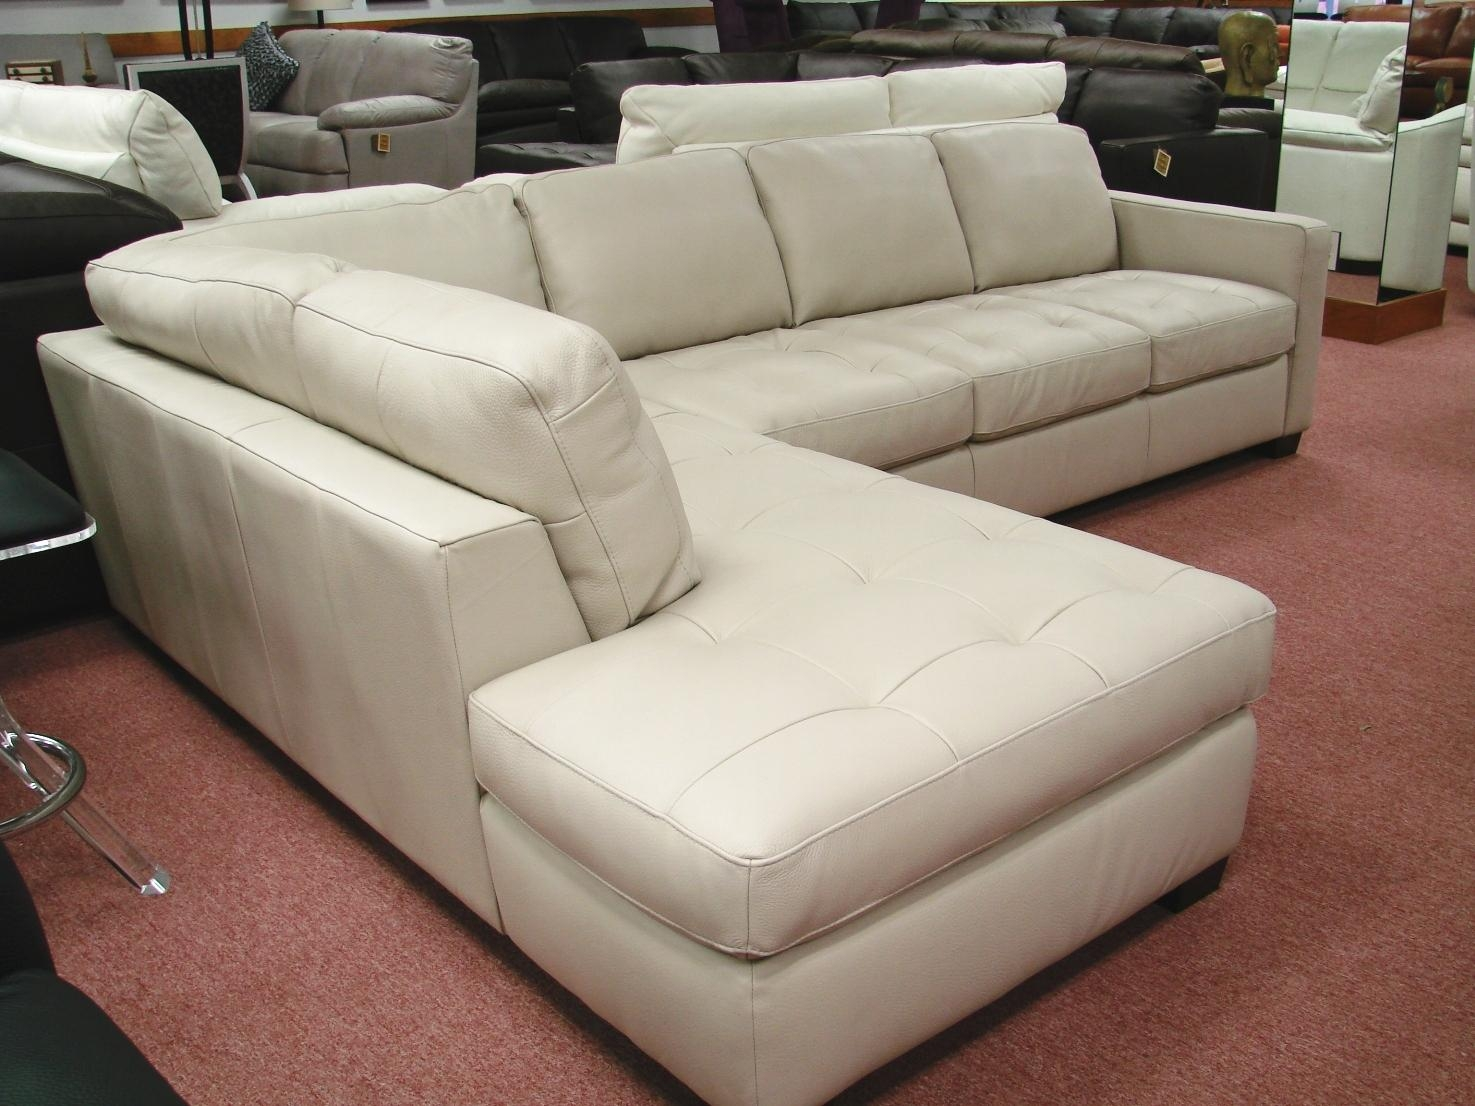 Sofa & Couch: Sectional Couches For Sale To Fit Your Living Room Regarding White Sectional Sofa For Sale (Image 15 of 21)